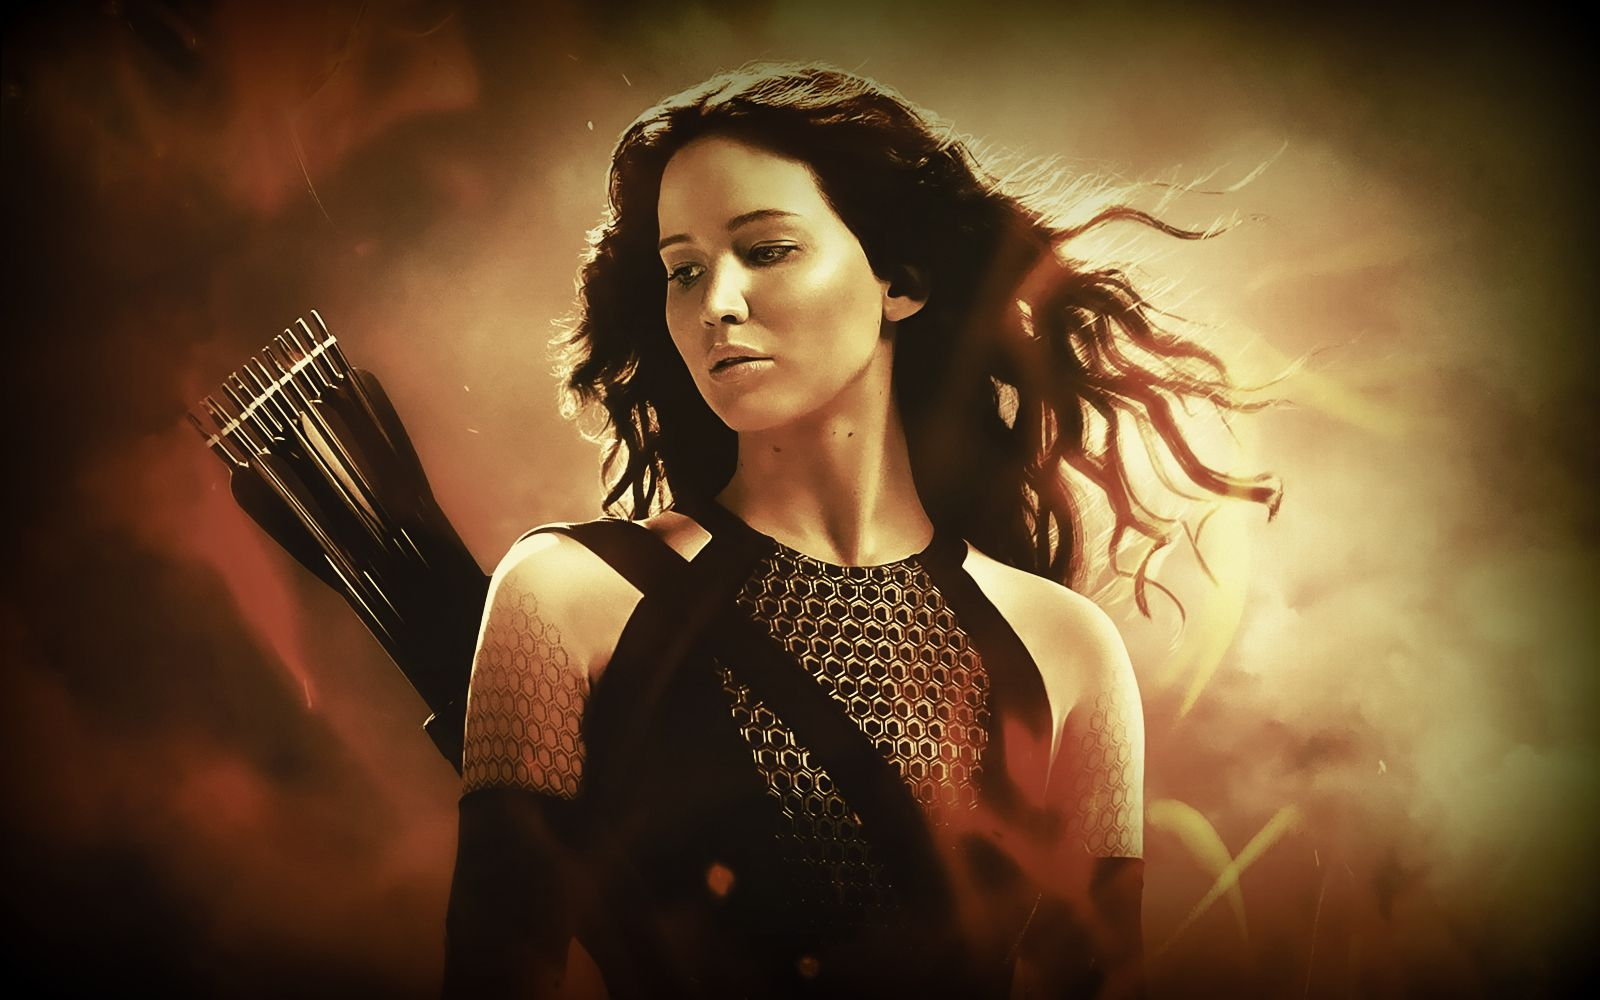 The hunger games wallpapers 1280800 hunger games wallpaper 33 the hunger games wallpapers 1280800 hunger games wallpaper 33 wallpapers adorable voltagebd Image collections